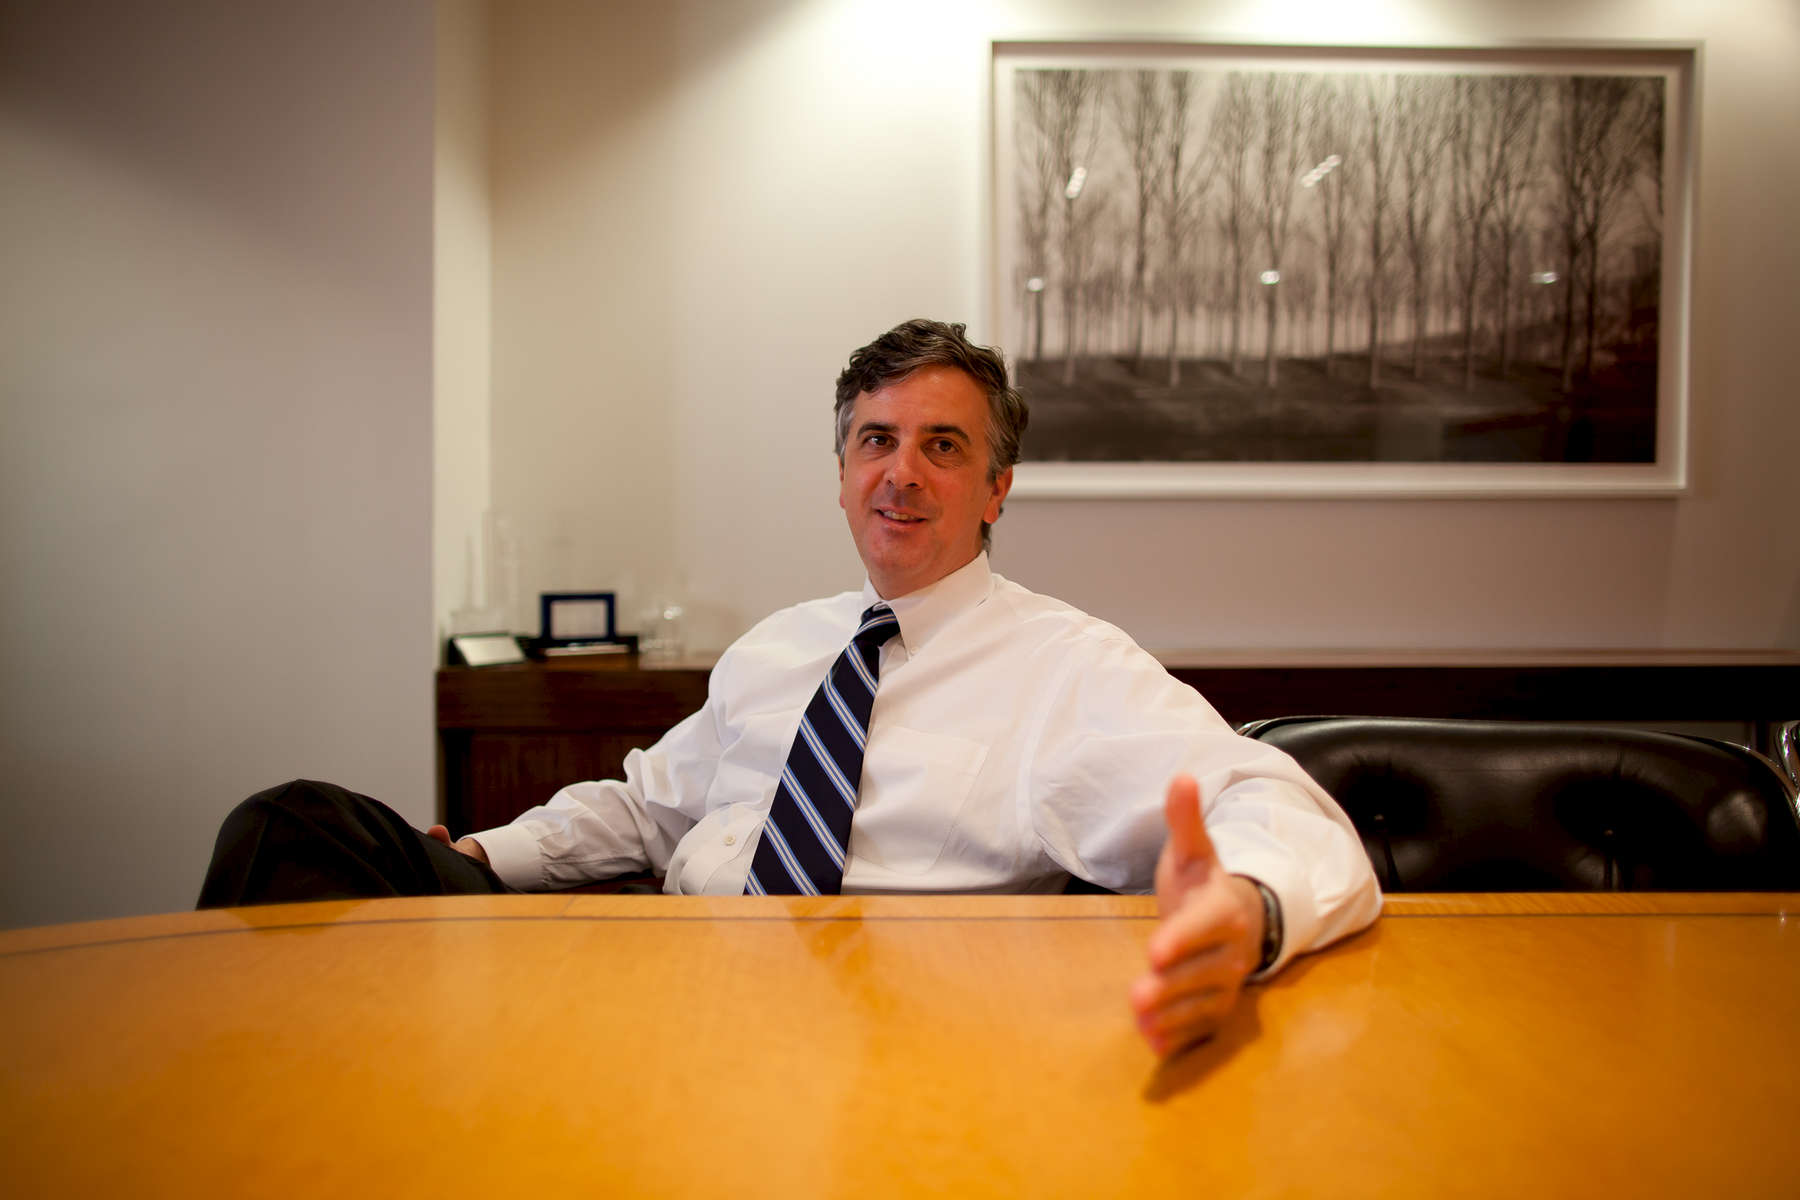 Mark G. Anderson, founder of MGAC in Washington, D.C. His firm specializes in high-end construction and project management.